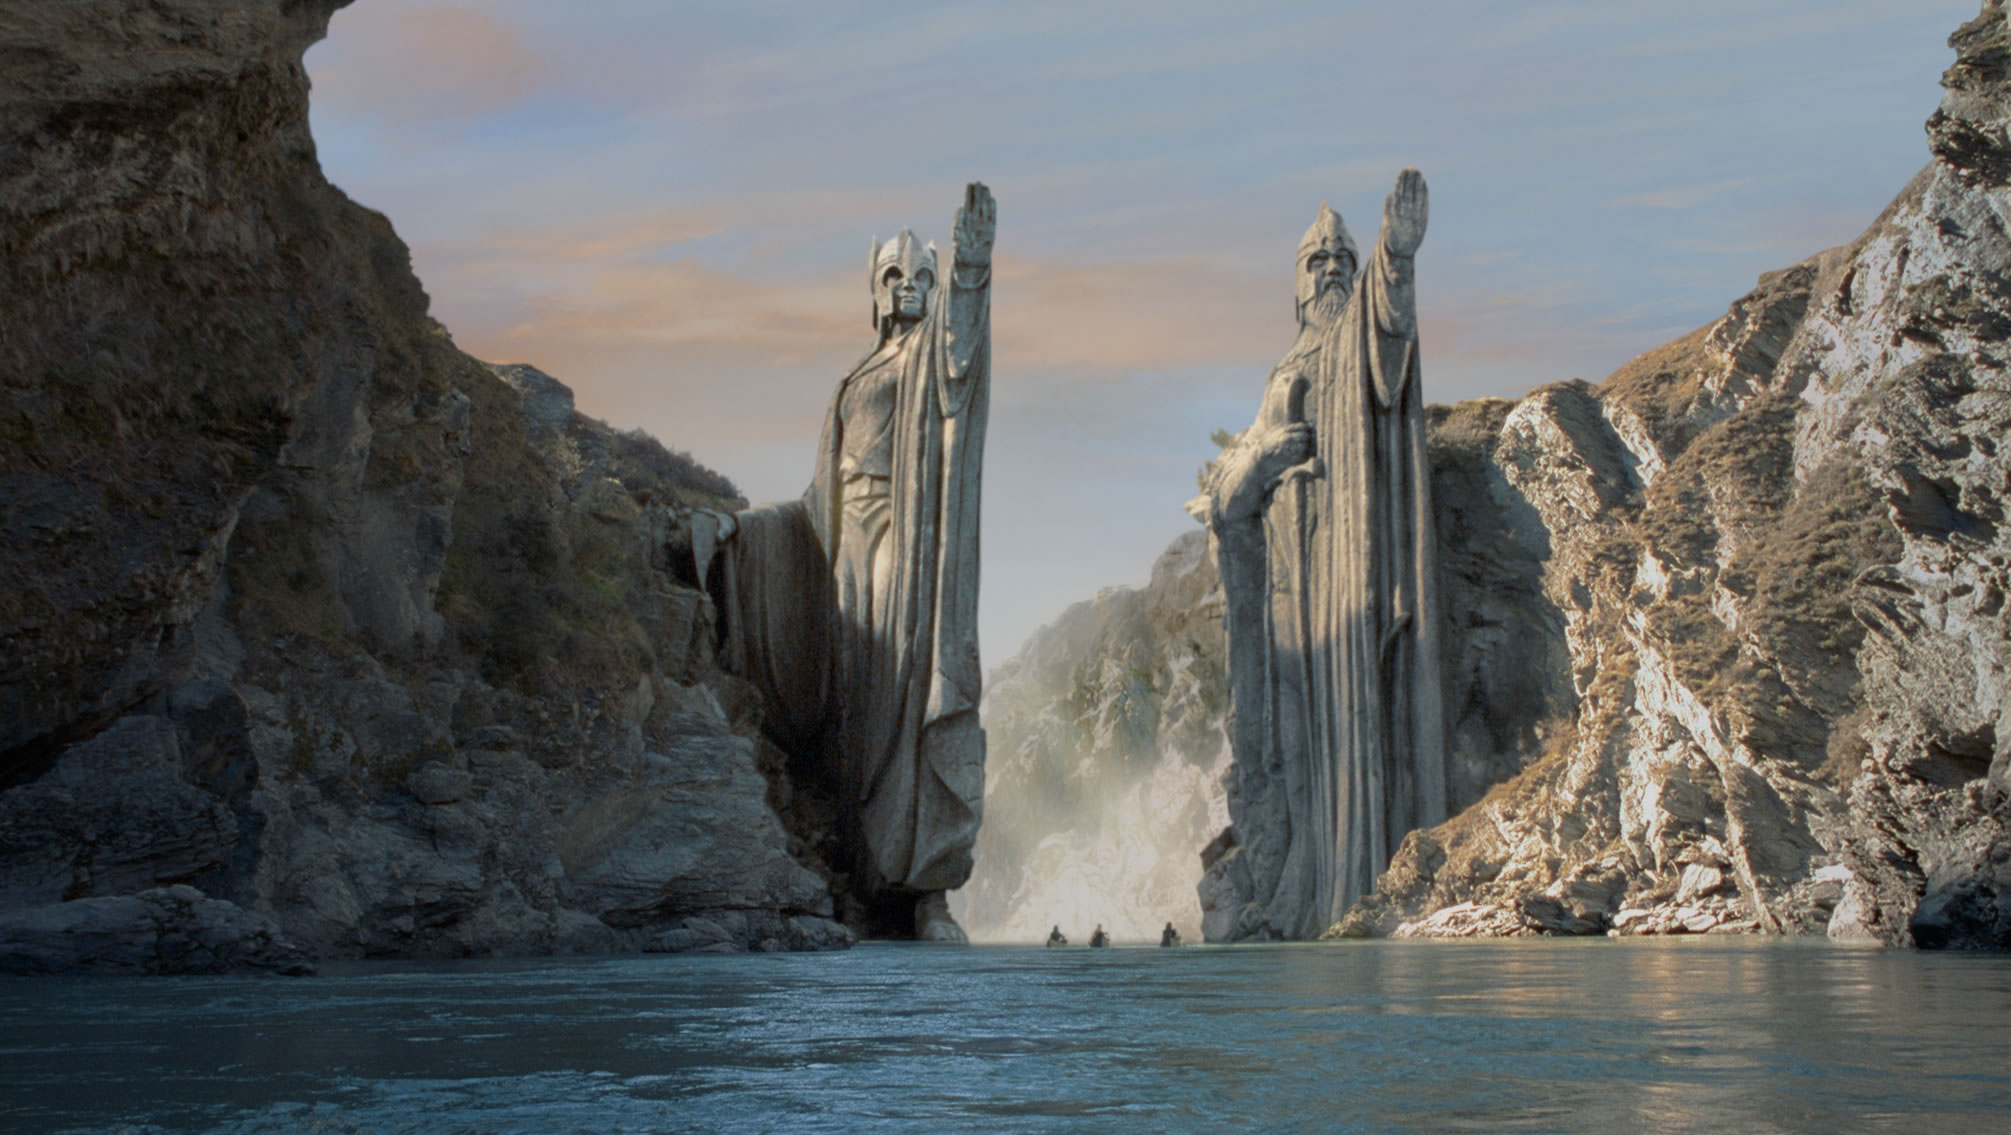 statue_ring_the_lord_of_rings_tolkien_argonath_lotr_isildur_anarion_fellowship_desktop_2011x1135_hd-wallpaper-25254